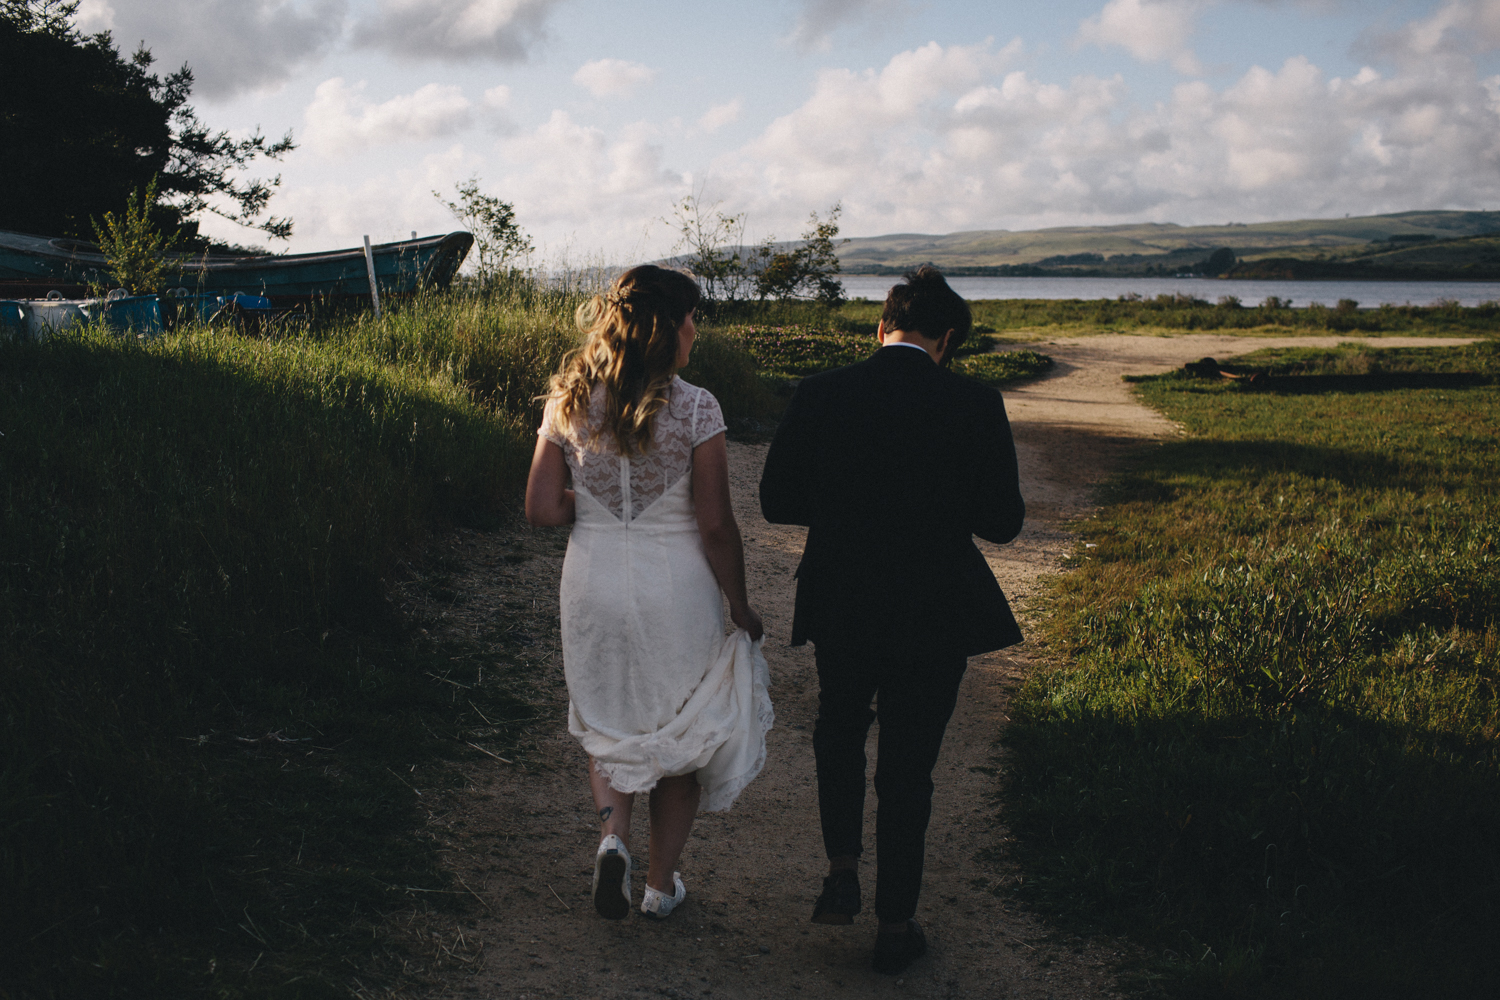 Point Reyes Inverness Wedding Photographer Rachelle Derouin-62.jpg